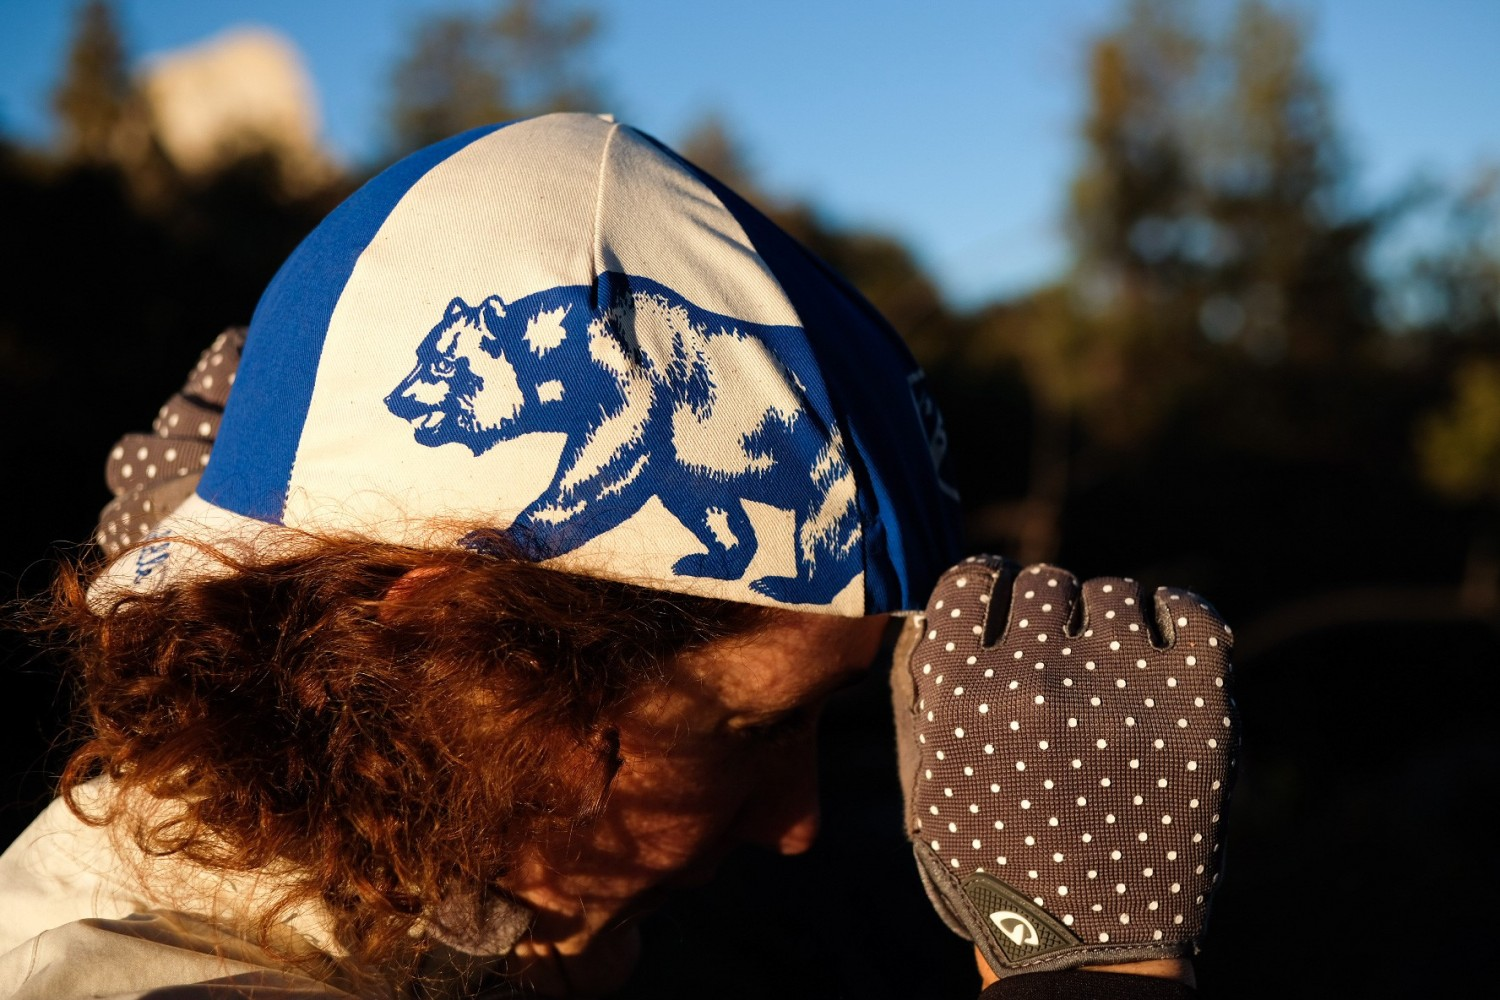 A person wearing a white with blue cap